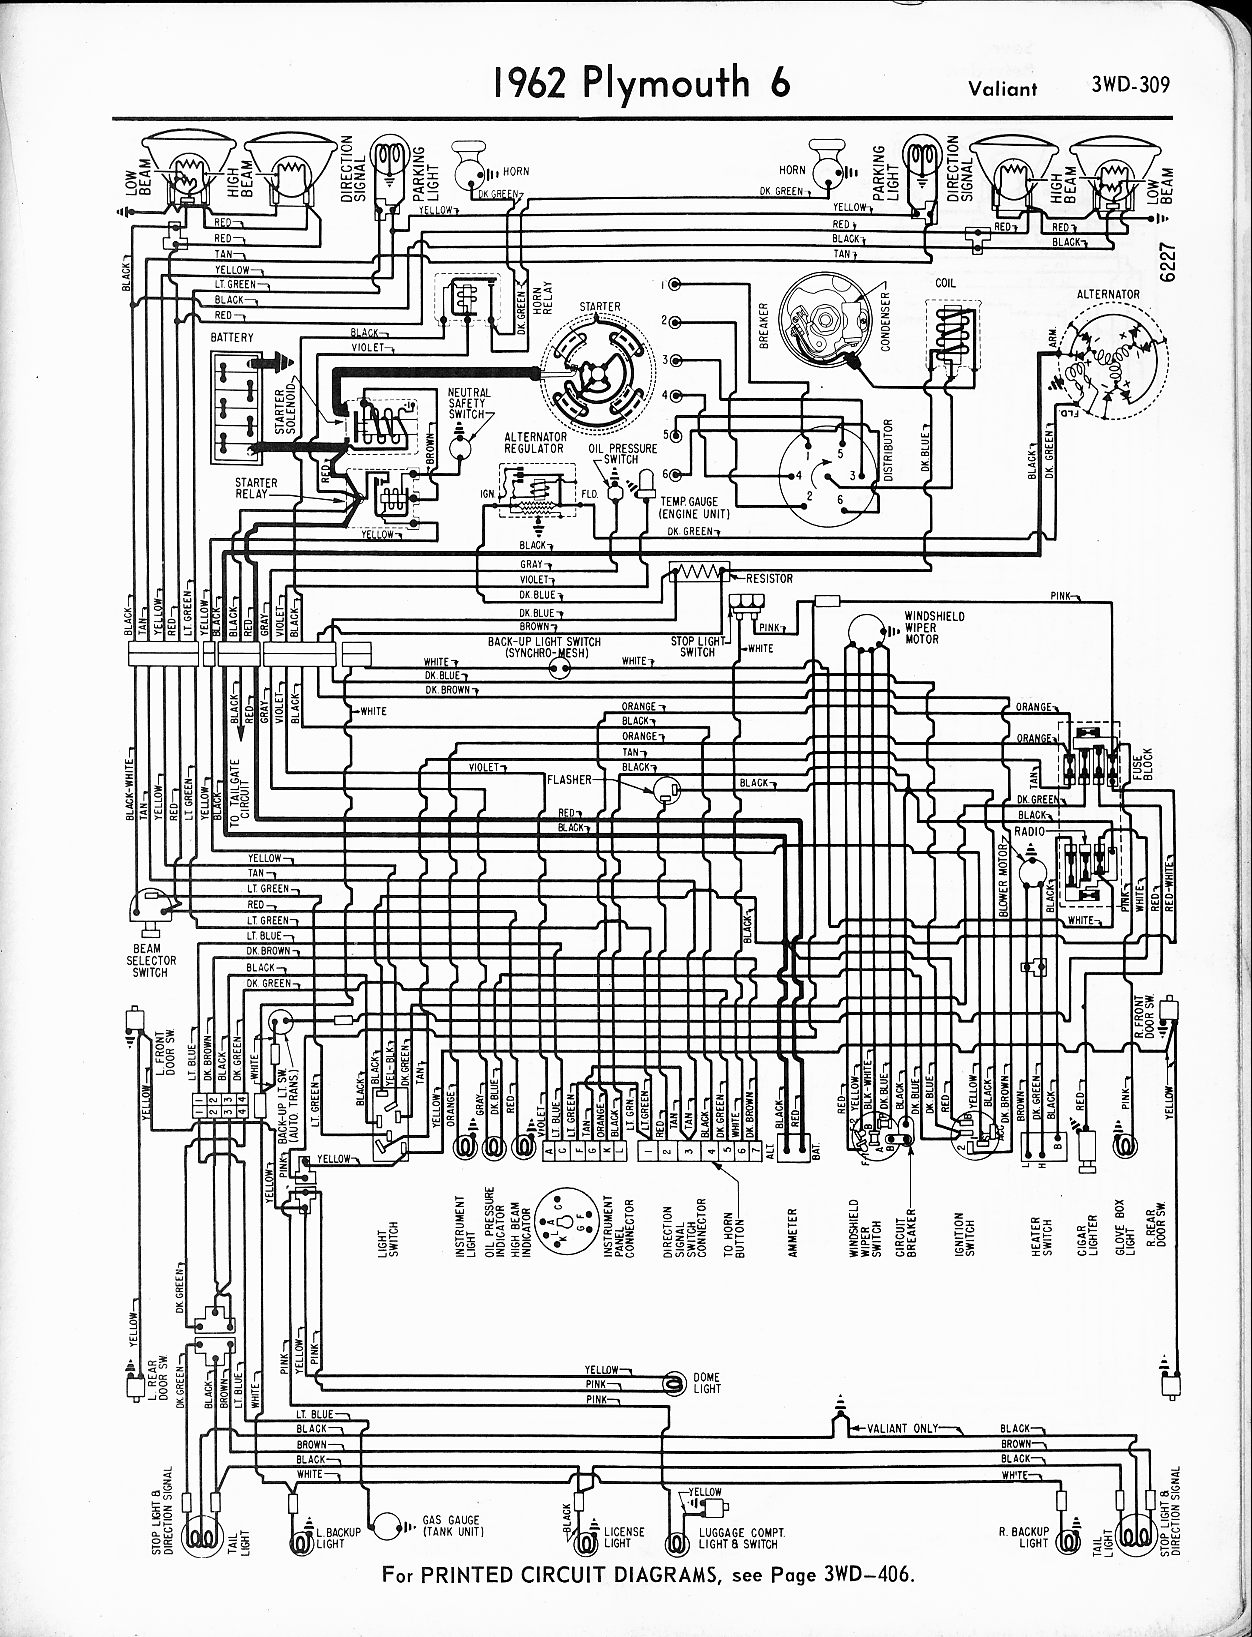 1970 Cuda Dash Wiring Diagram Great Design Of 91 Mustang Starter Free Picture 71 Get Image About Chevy Truck Mopar Relay